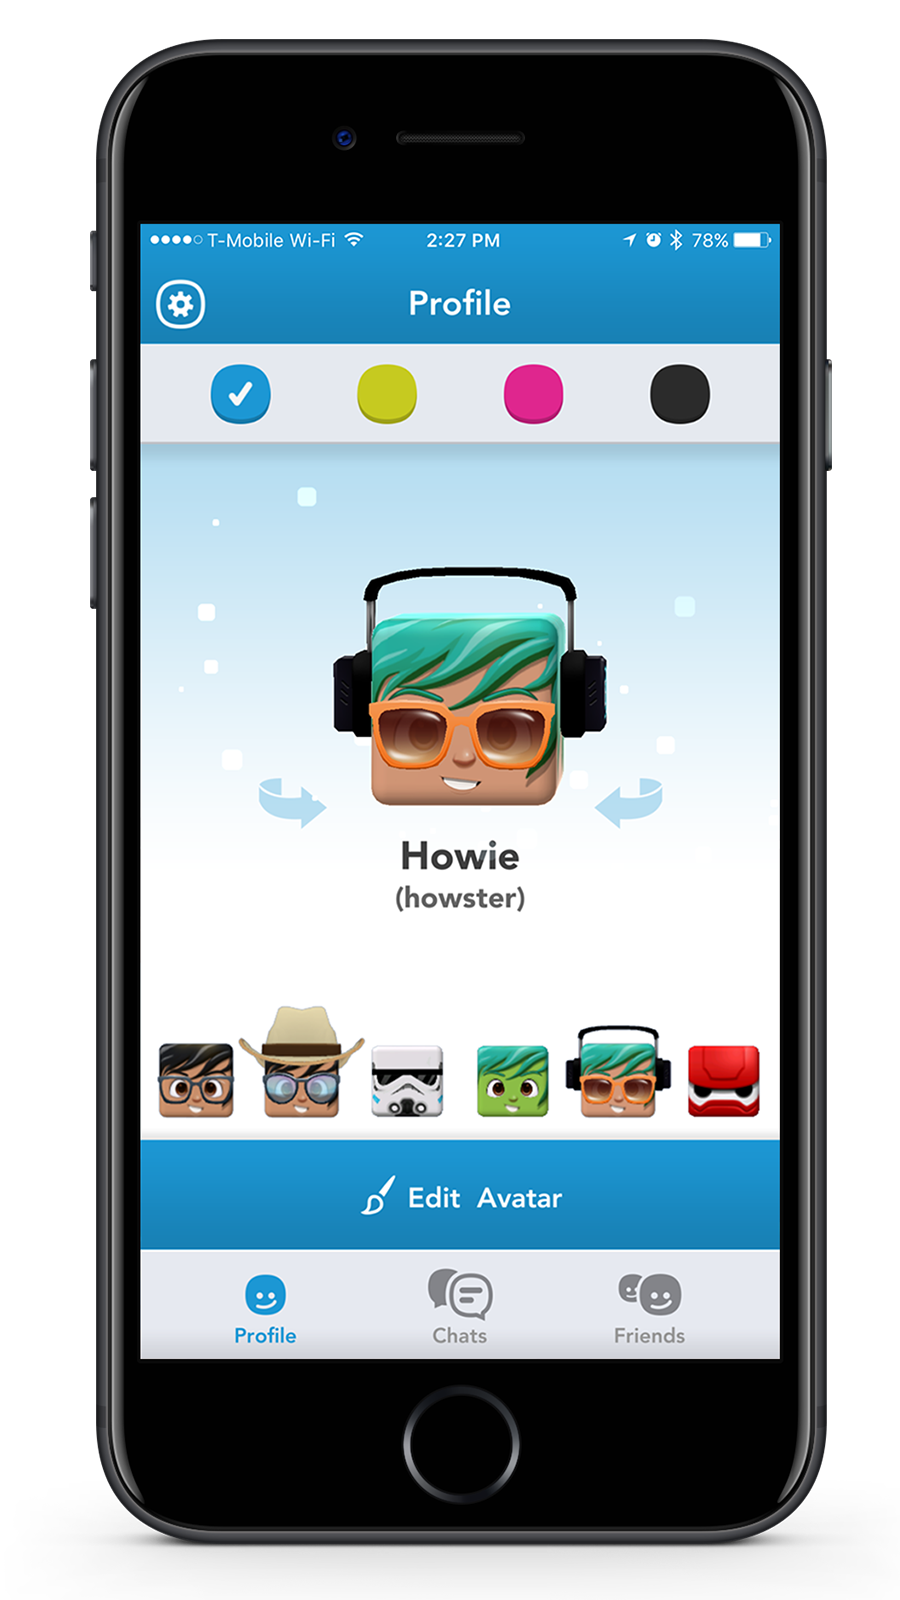 Profile Screen - Users can select and manage their saved outfits. Setting custom UI colors for the app was a feature later added to this screen.